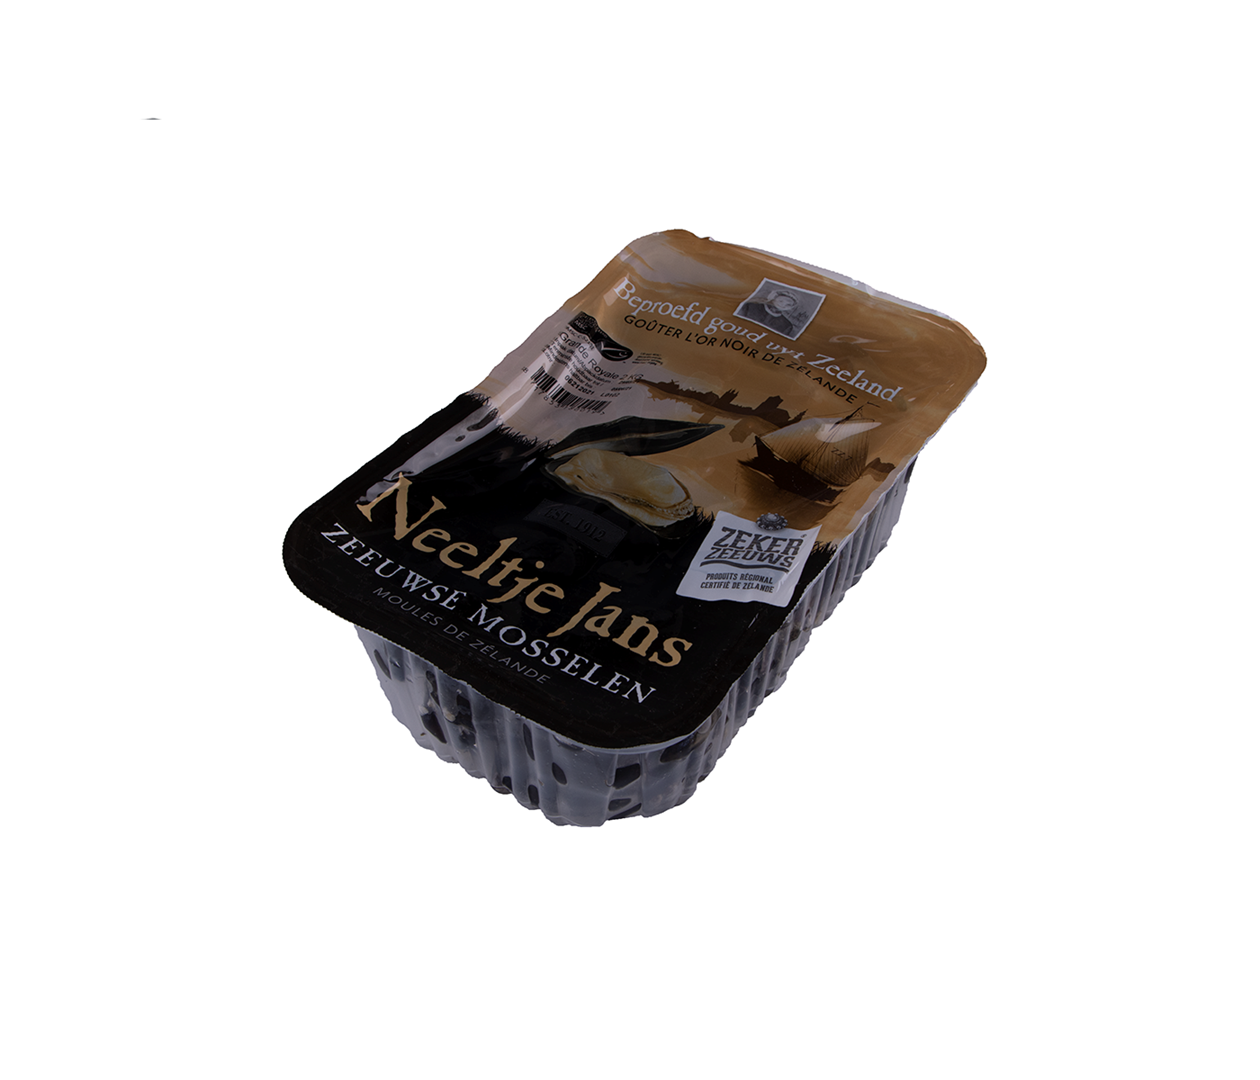 Productafbeelding MUSSELS HANGCULTURE SMALL PACKAGING 2 KG